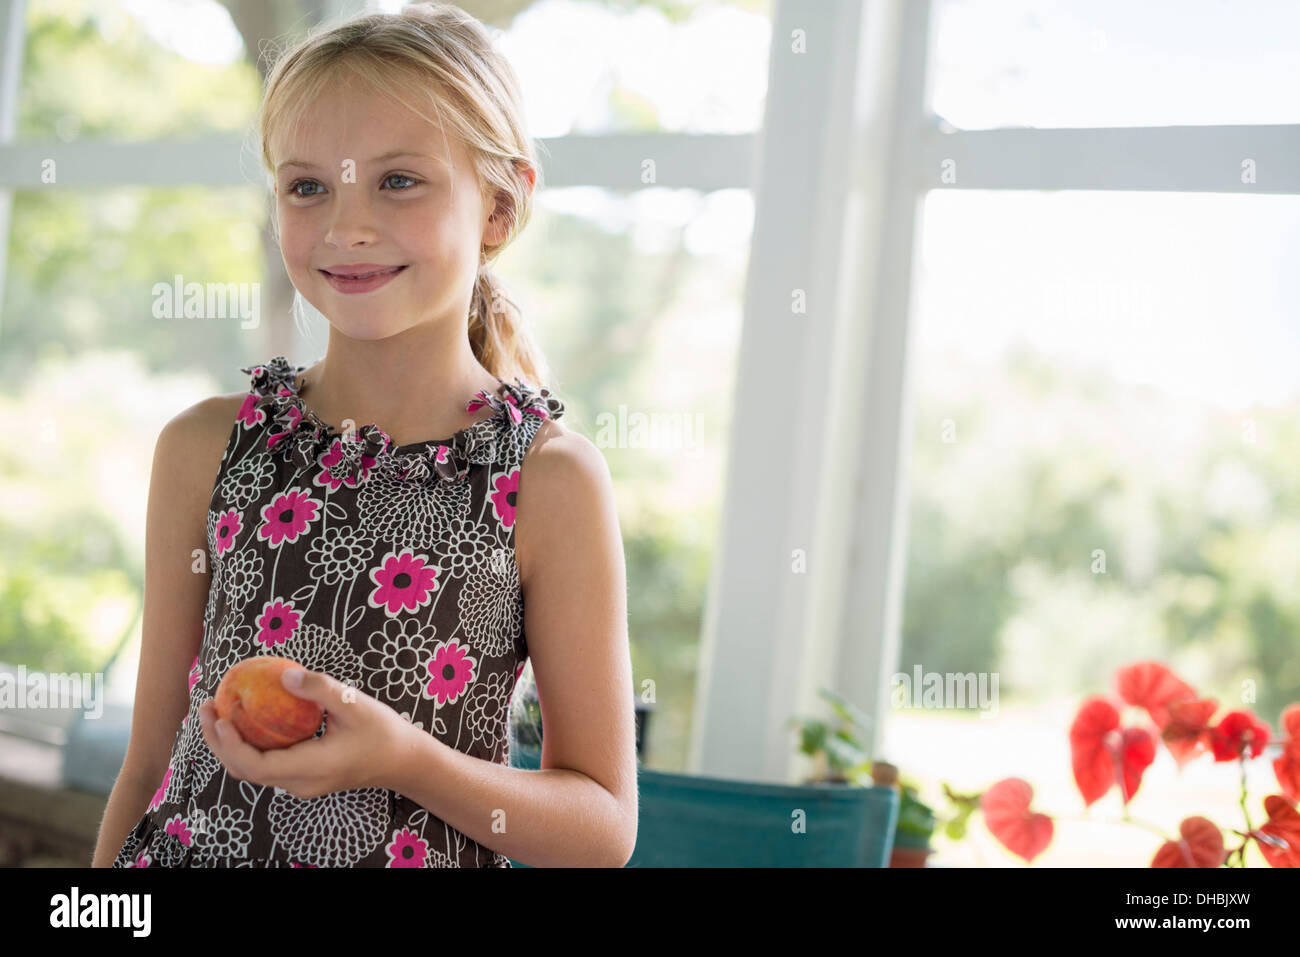 A young girl in a floral dress holding a peach fruit. - Stock Image